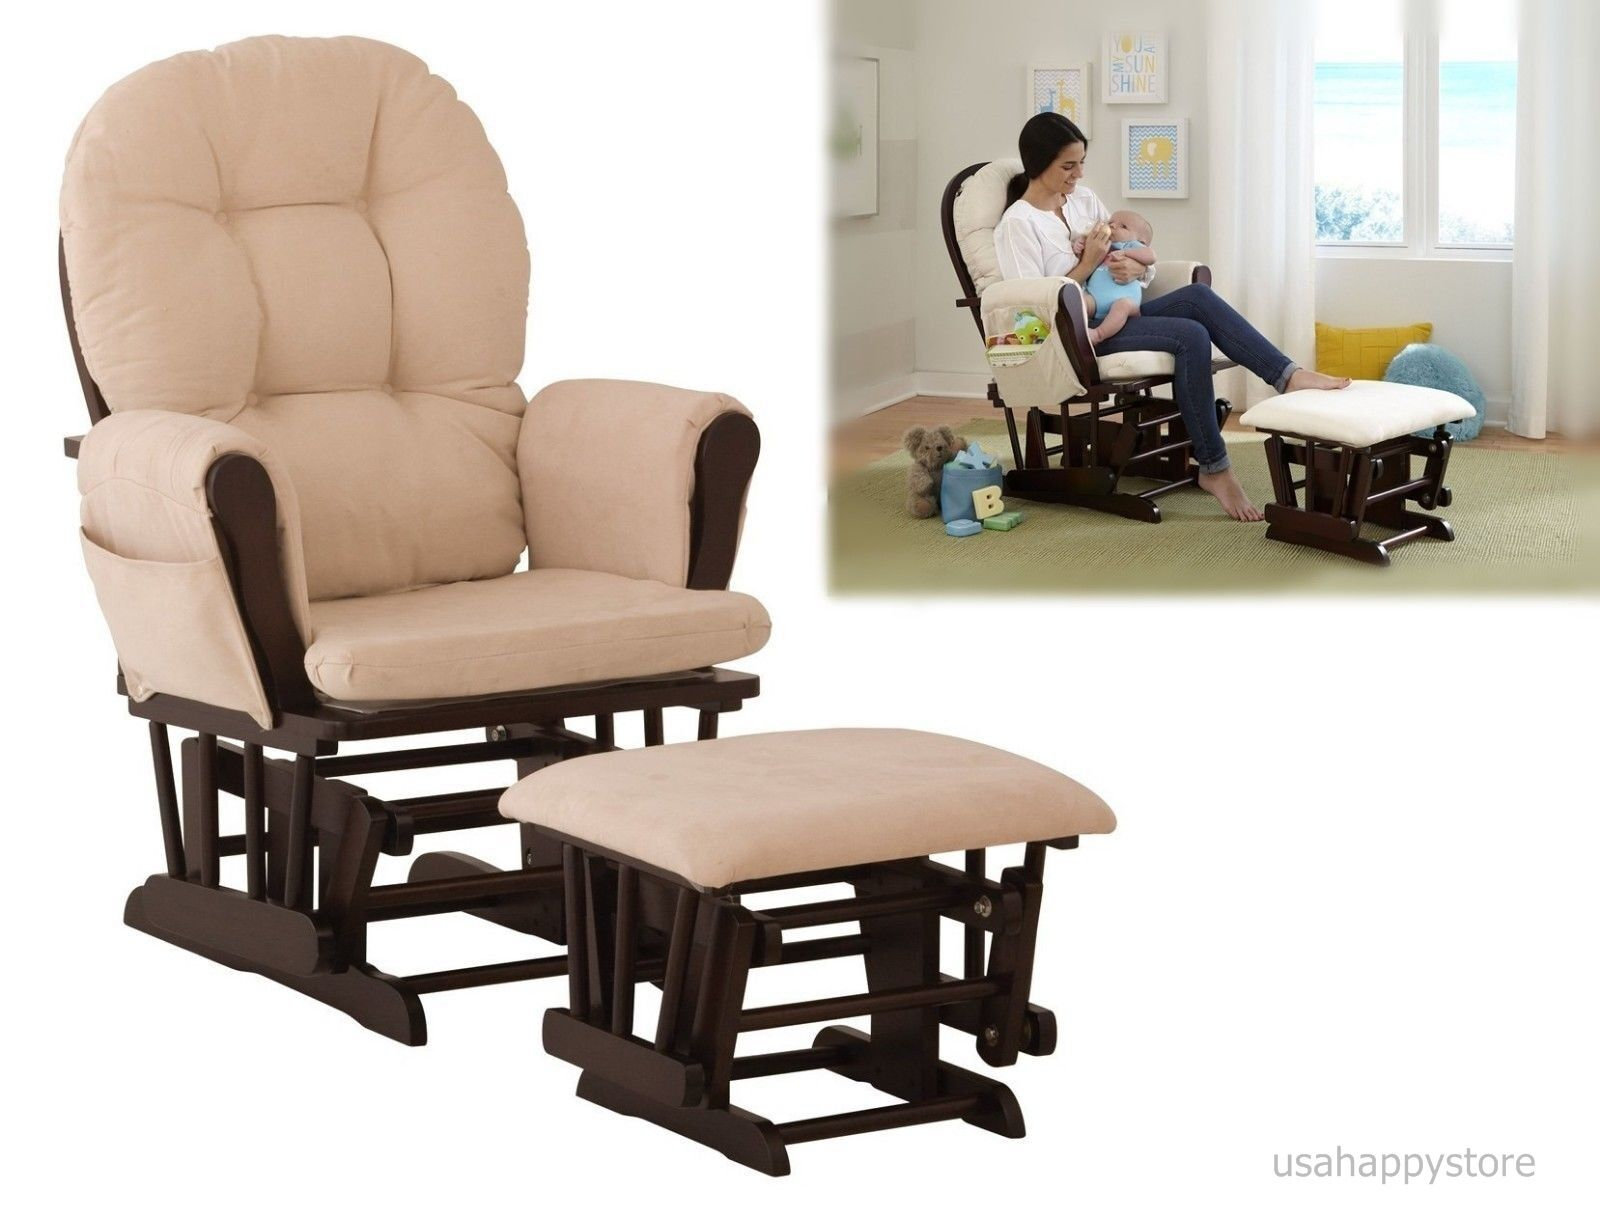 Glider Rocking Chair With Ottoman Design Home & Interior Design